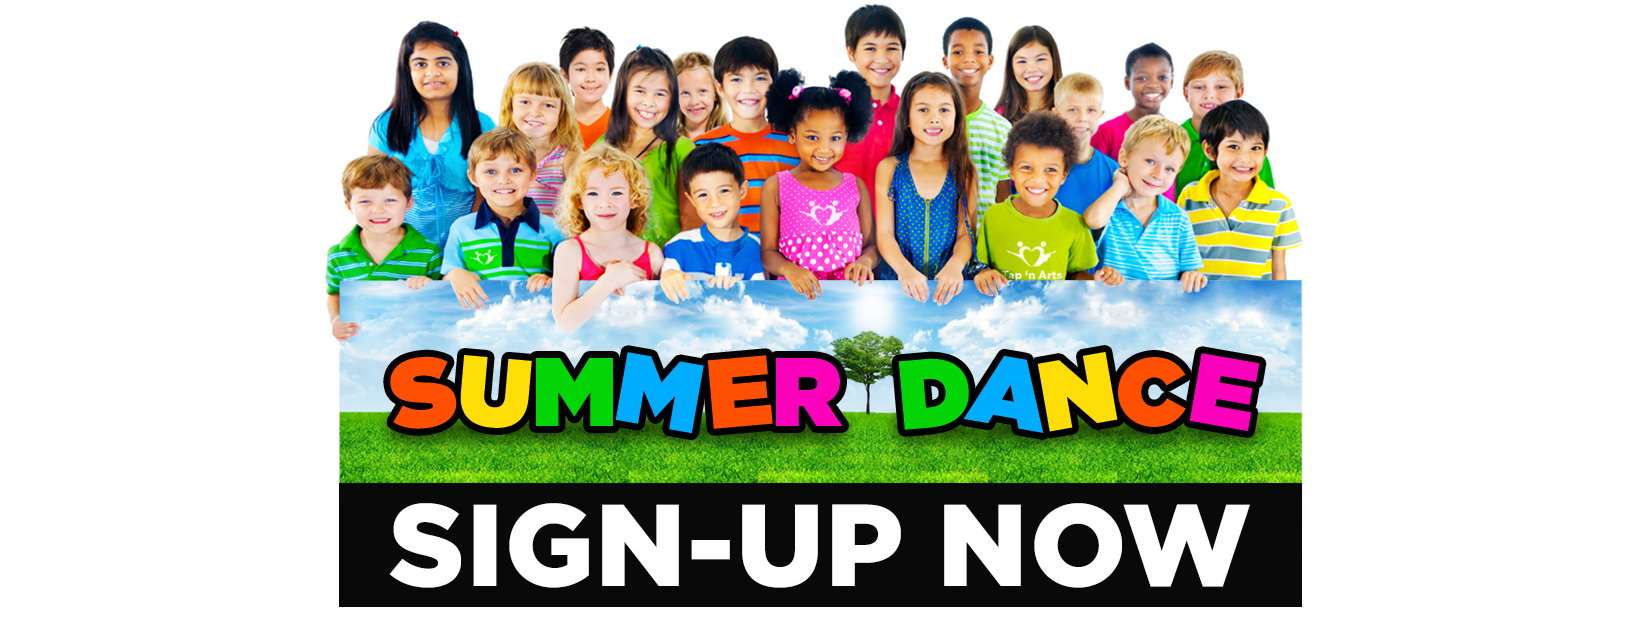 Summer Dance: Sign-up Now